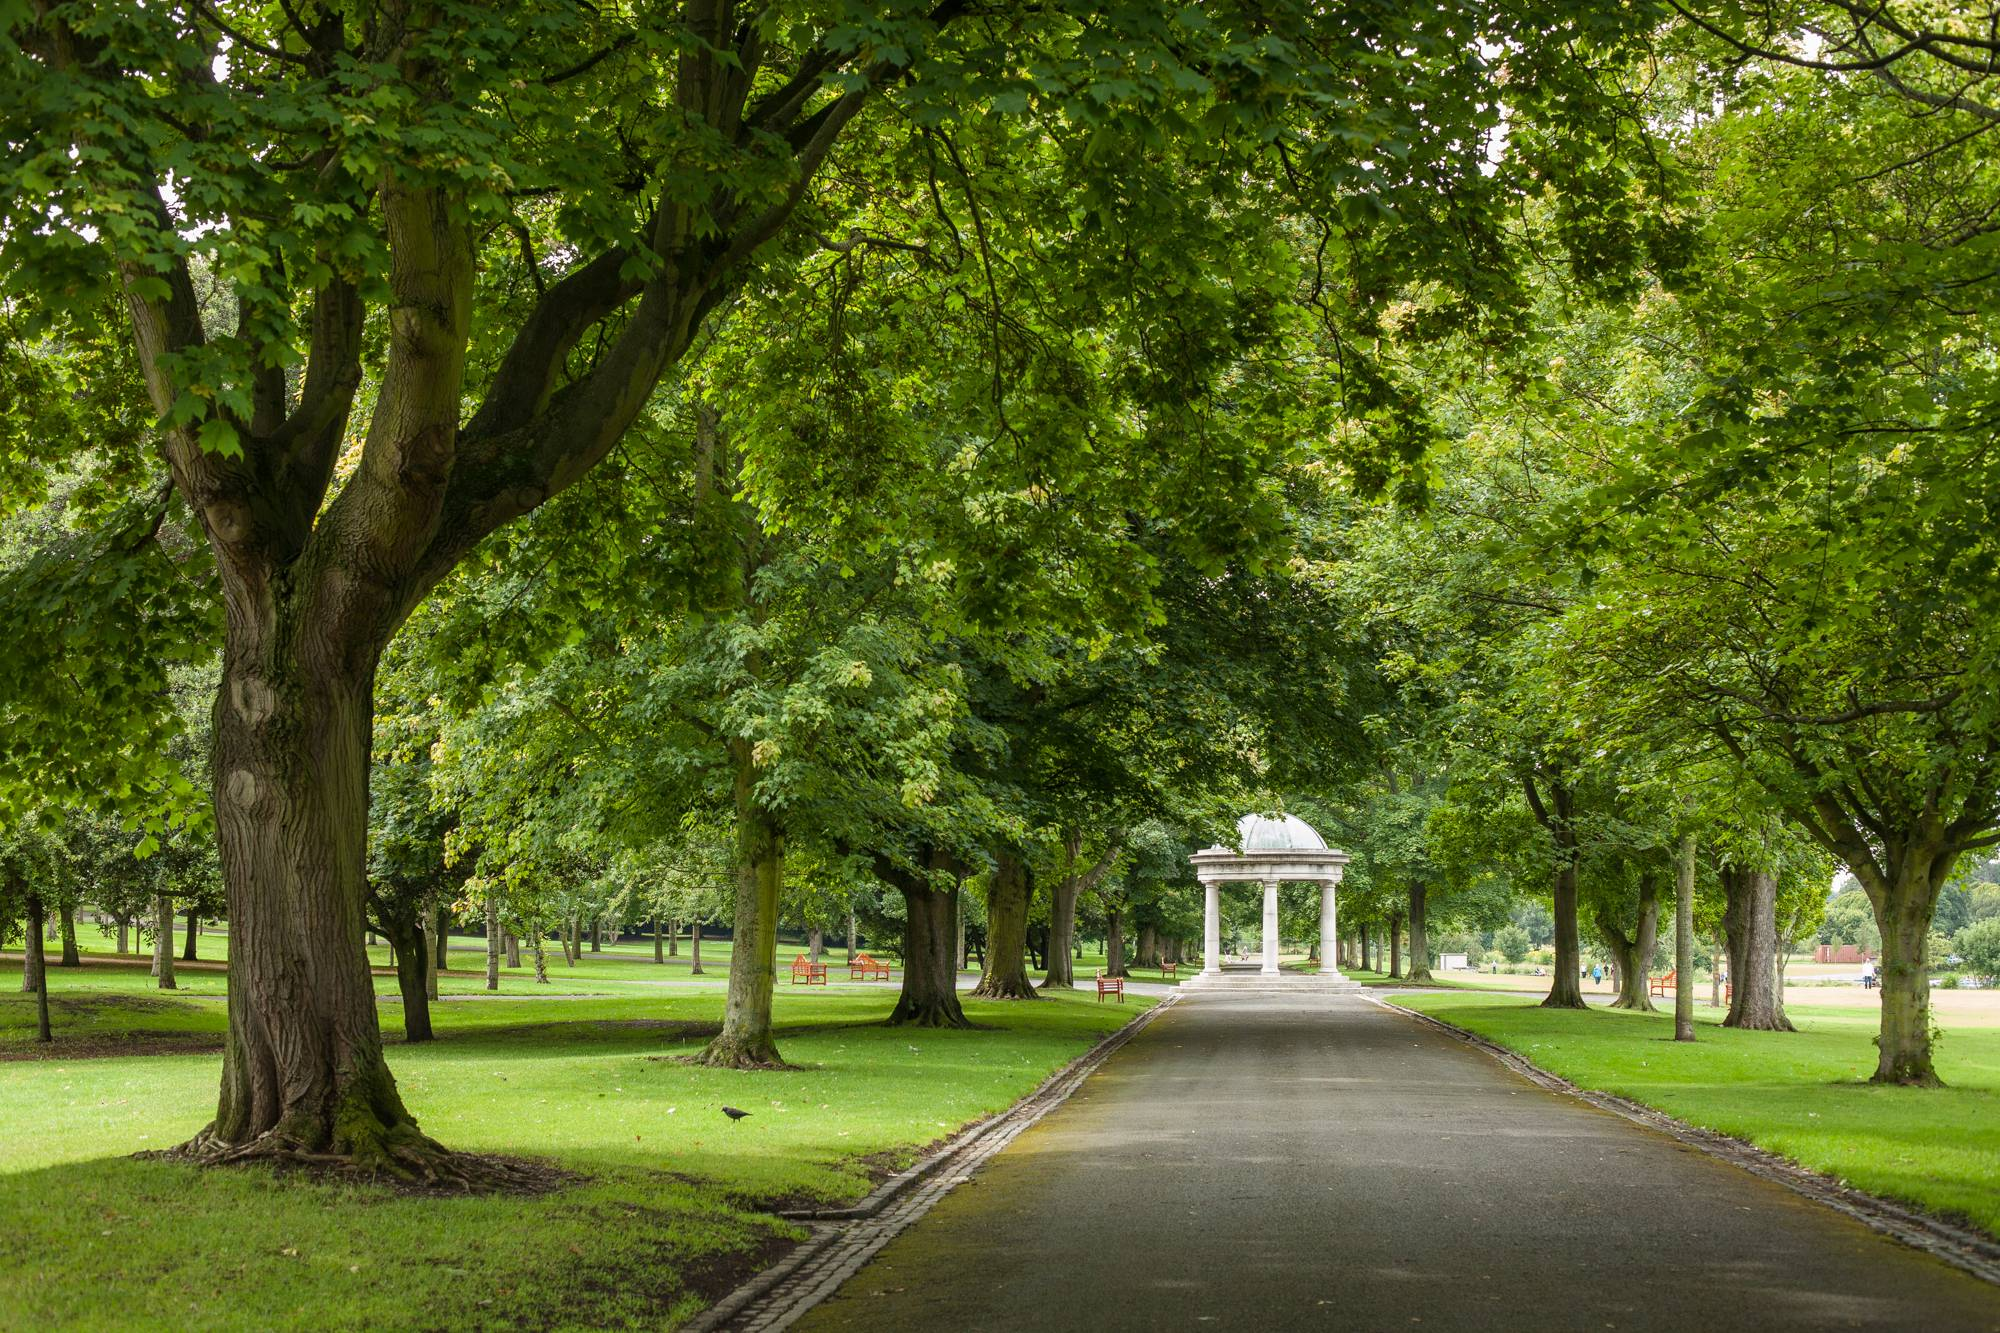 Avenue of trees leading to the temple in the Irish National War Memorial Gardens. Julie Matkin.